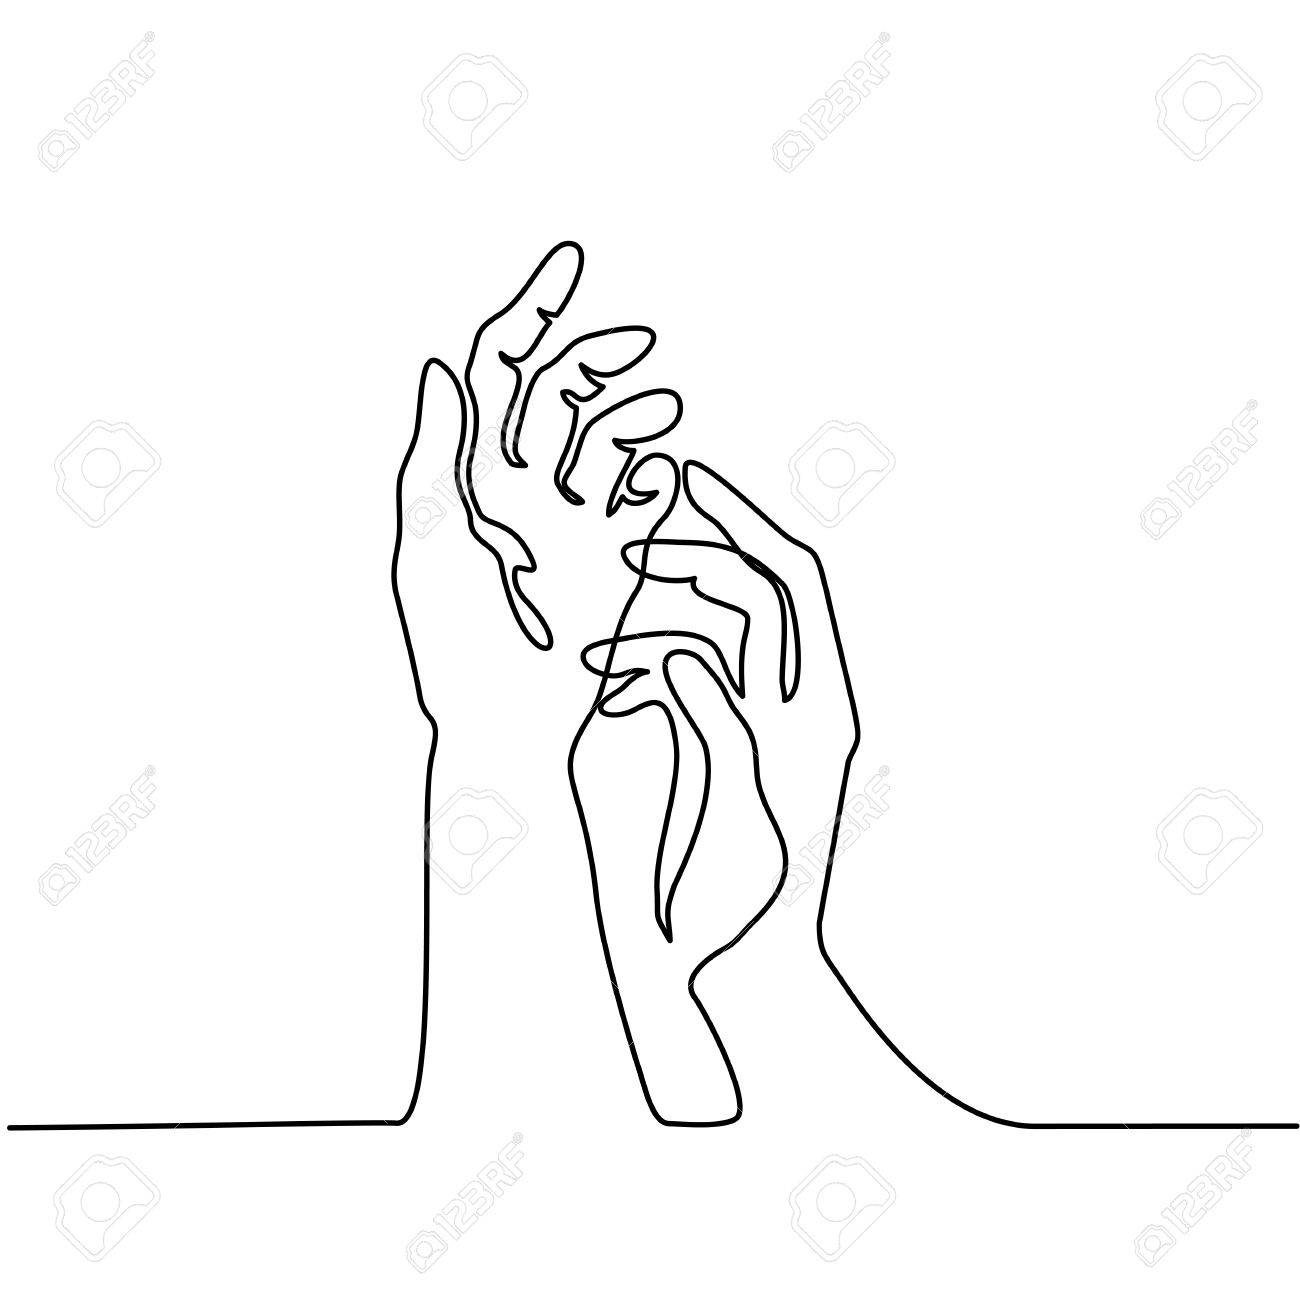 Hands Line Drawing At Getdrawings